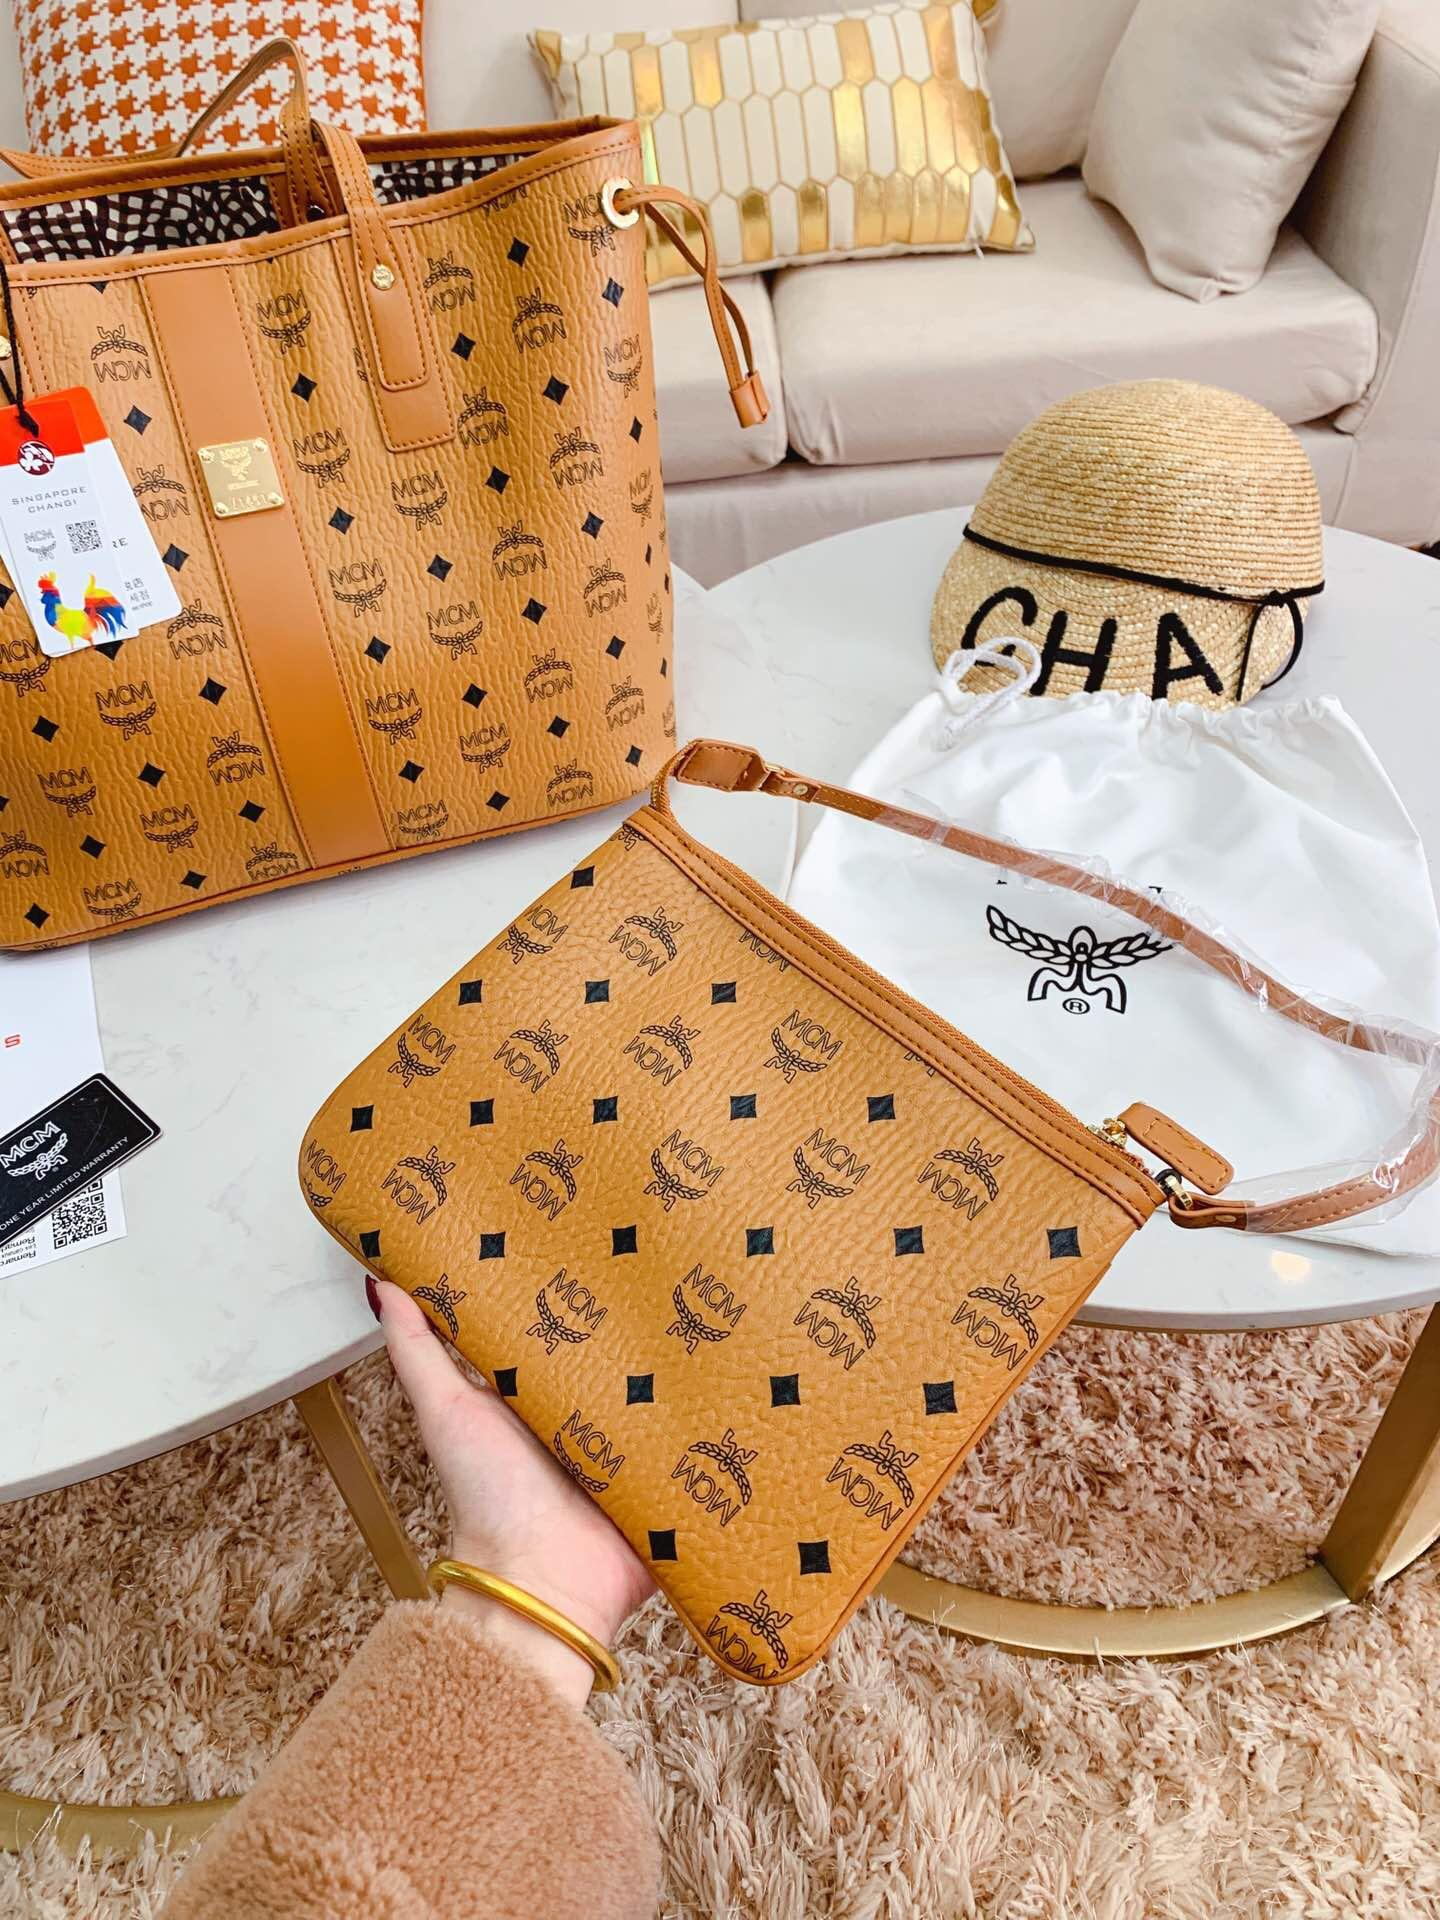 MCM replica shopping bag